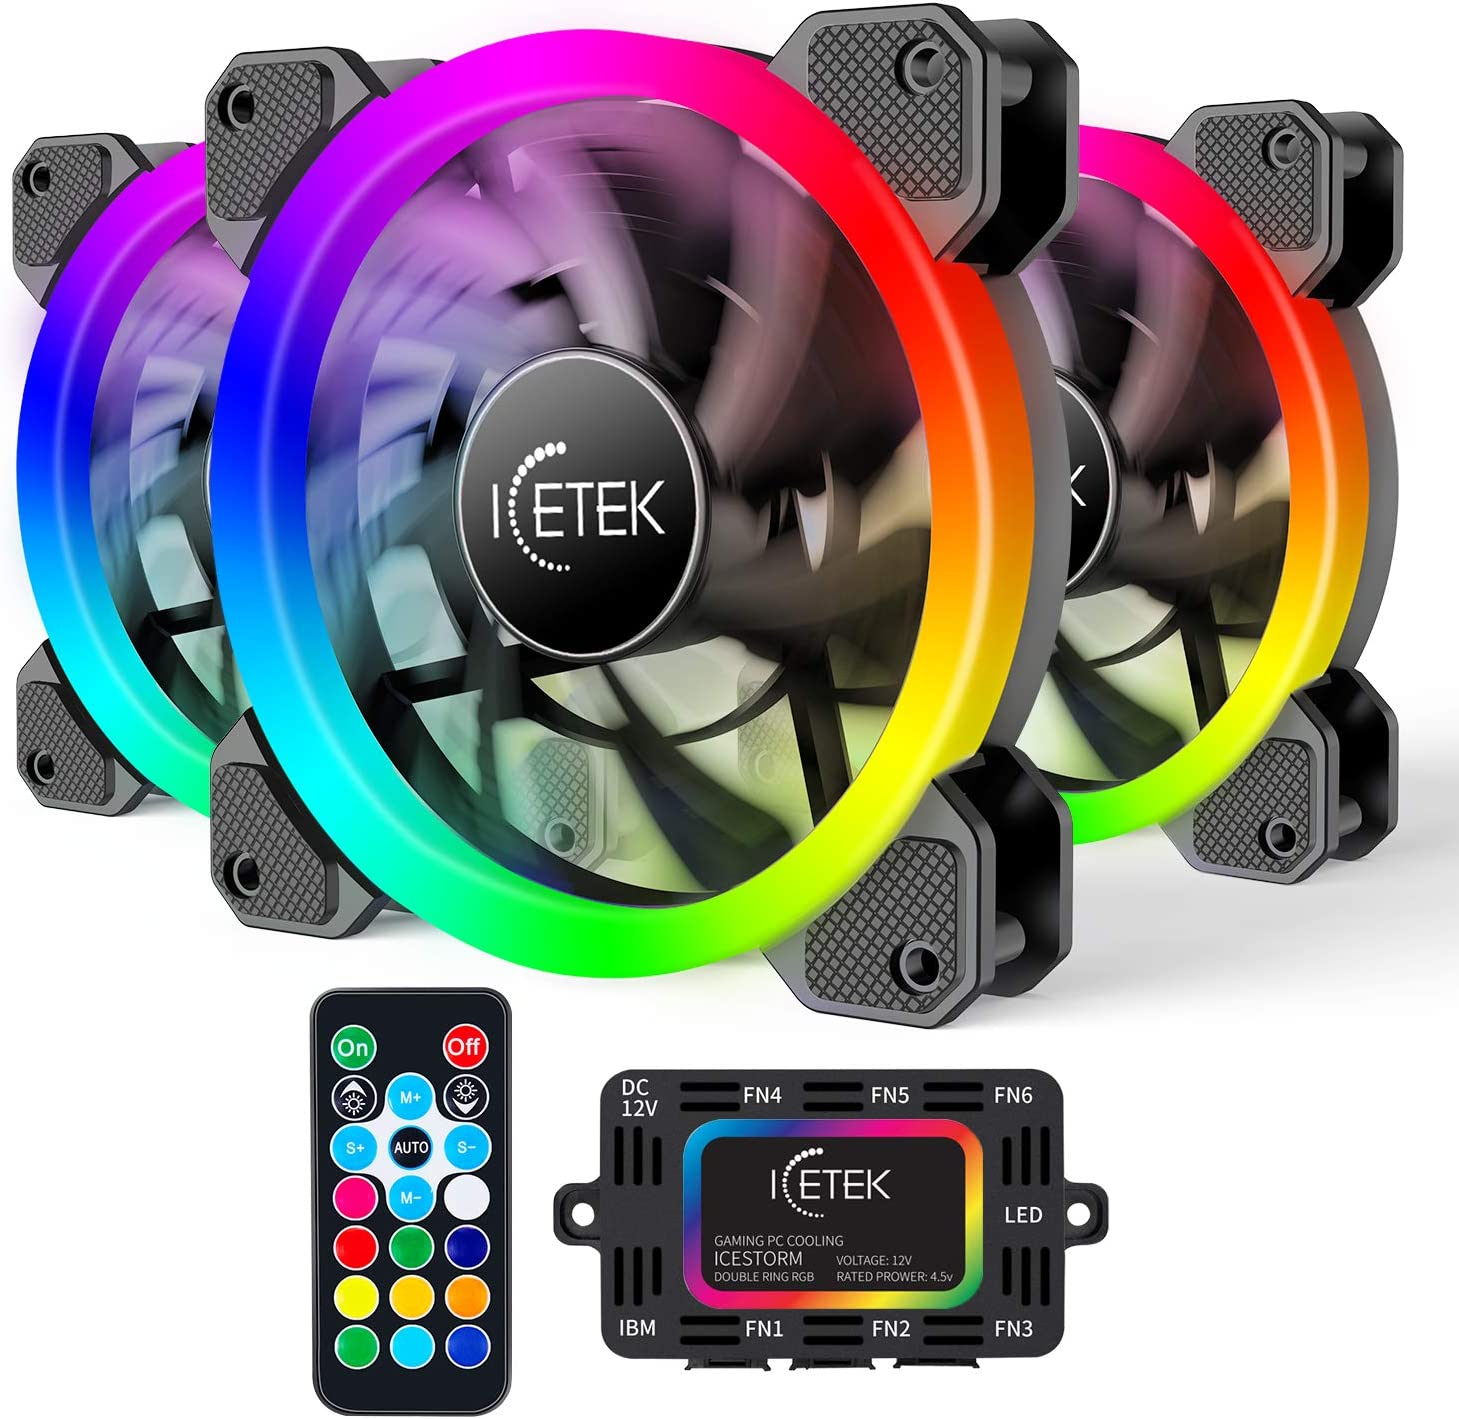 RGB Case Fans 3 Pack, GIM 3In1 Kit LED(366 Modes with Controller and Remote) PC Computer Case 120mm Fan RGB, Reinforced Quiet Fan Blade Design, Adjustable Colorful Cooling Cooler